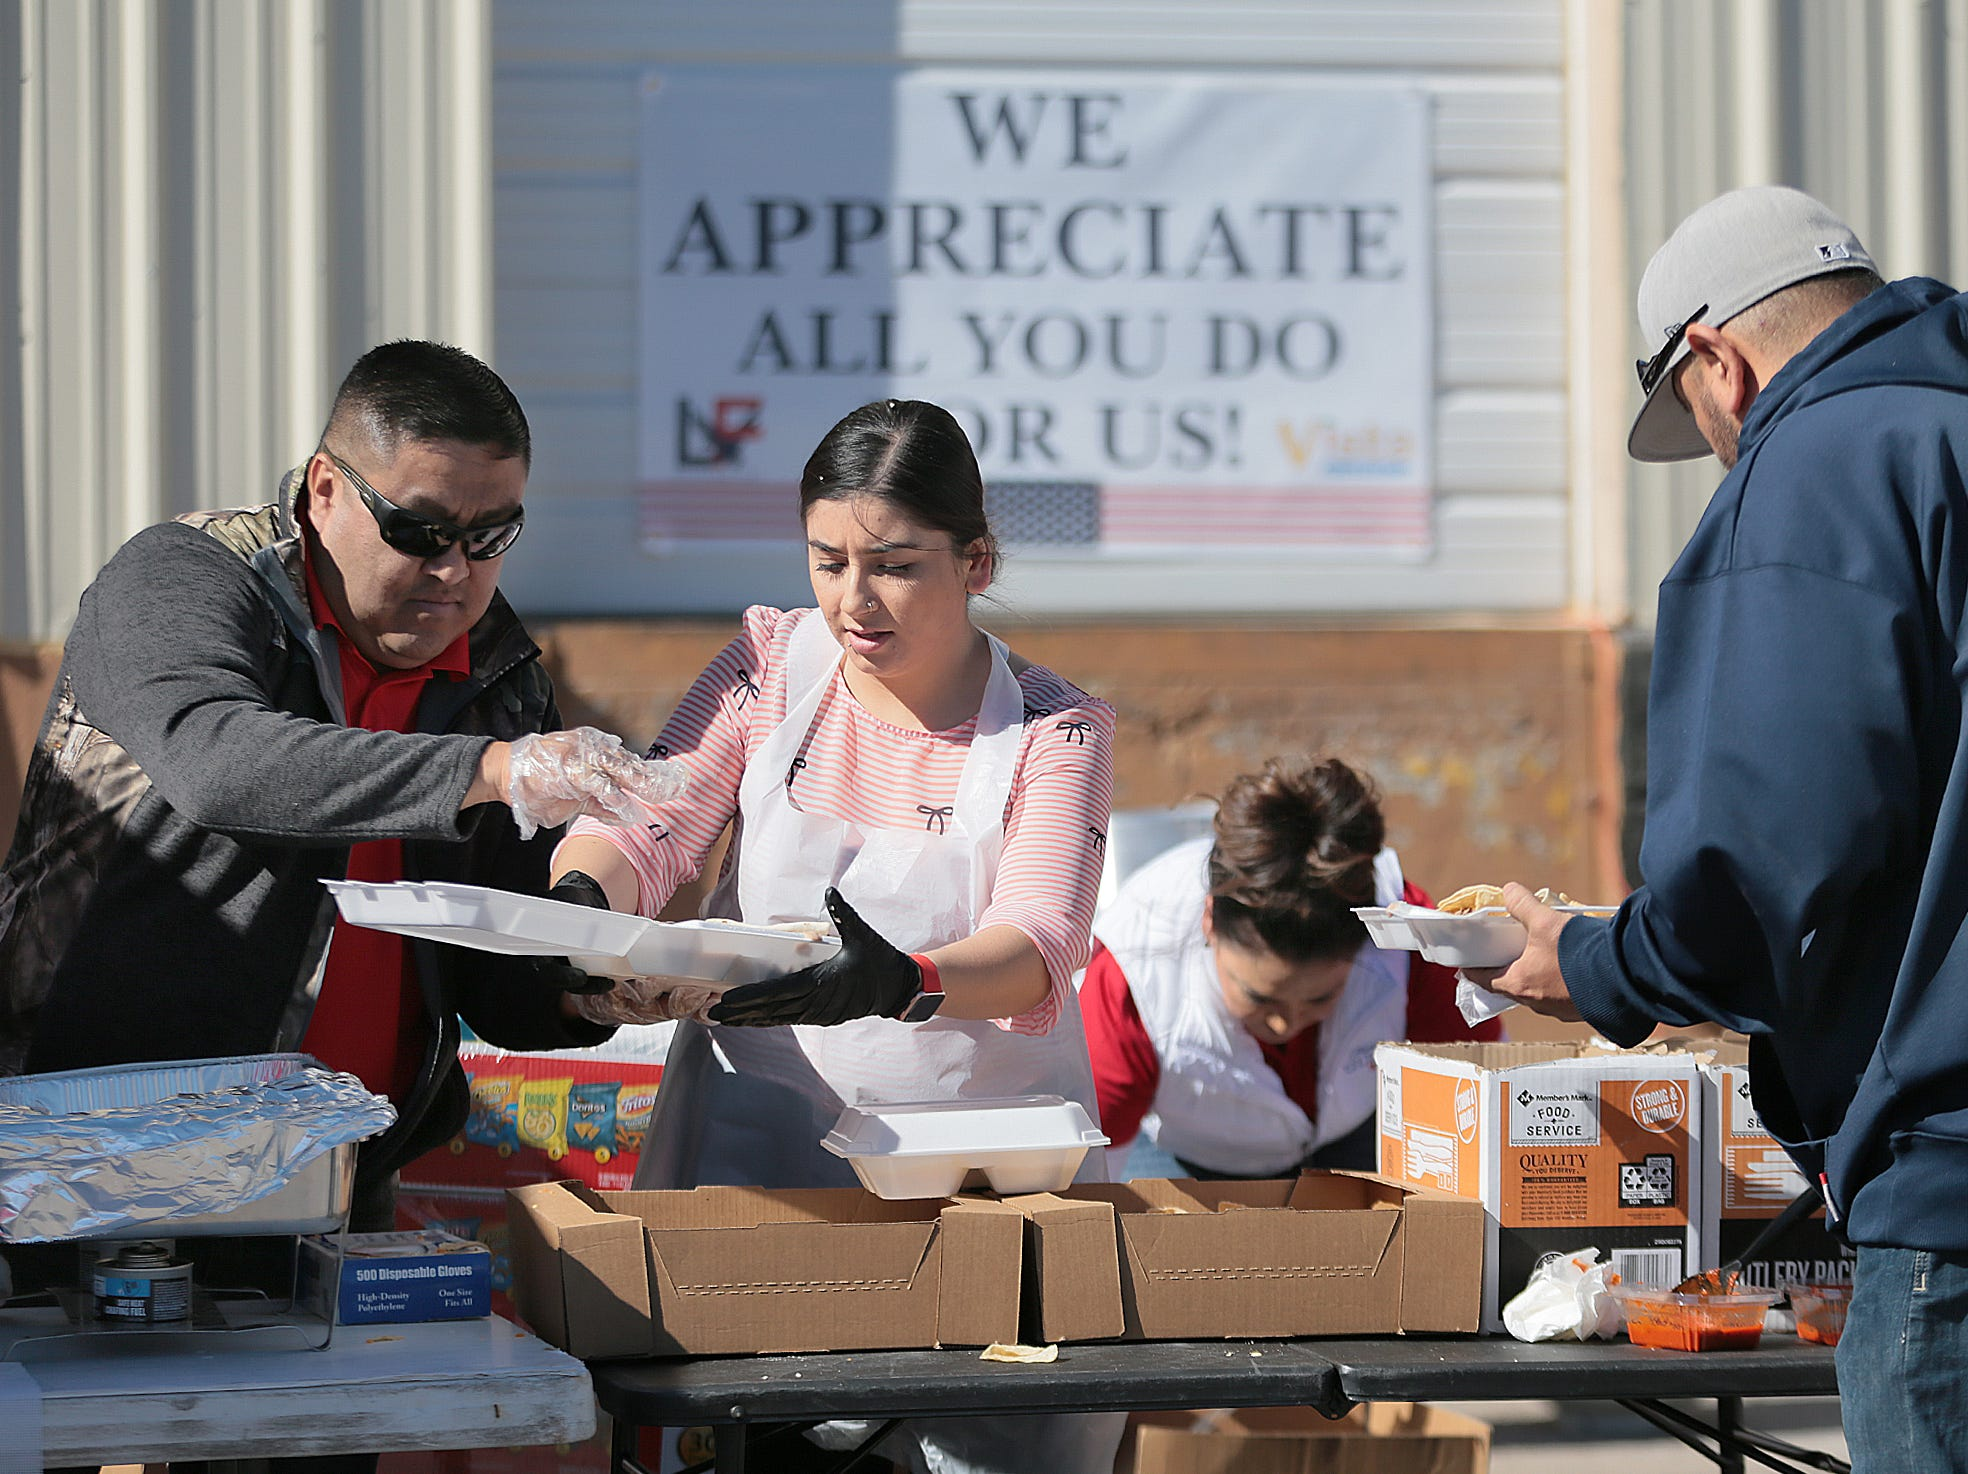 L&F Distributors and Vista Market teamed up to host a barbecue for furloughed federal workers Wednesday. Gift cards were donated by Cabo Joe's, Pizza Hut and Wing Daddy's and raffled off at the event.